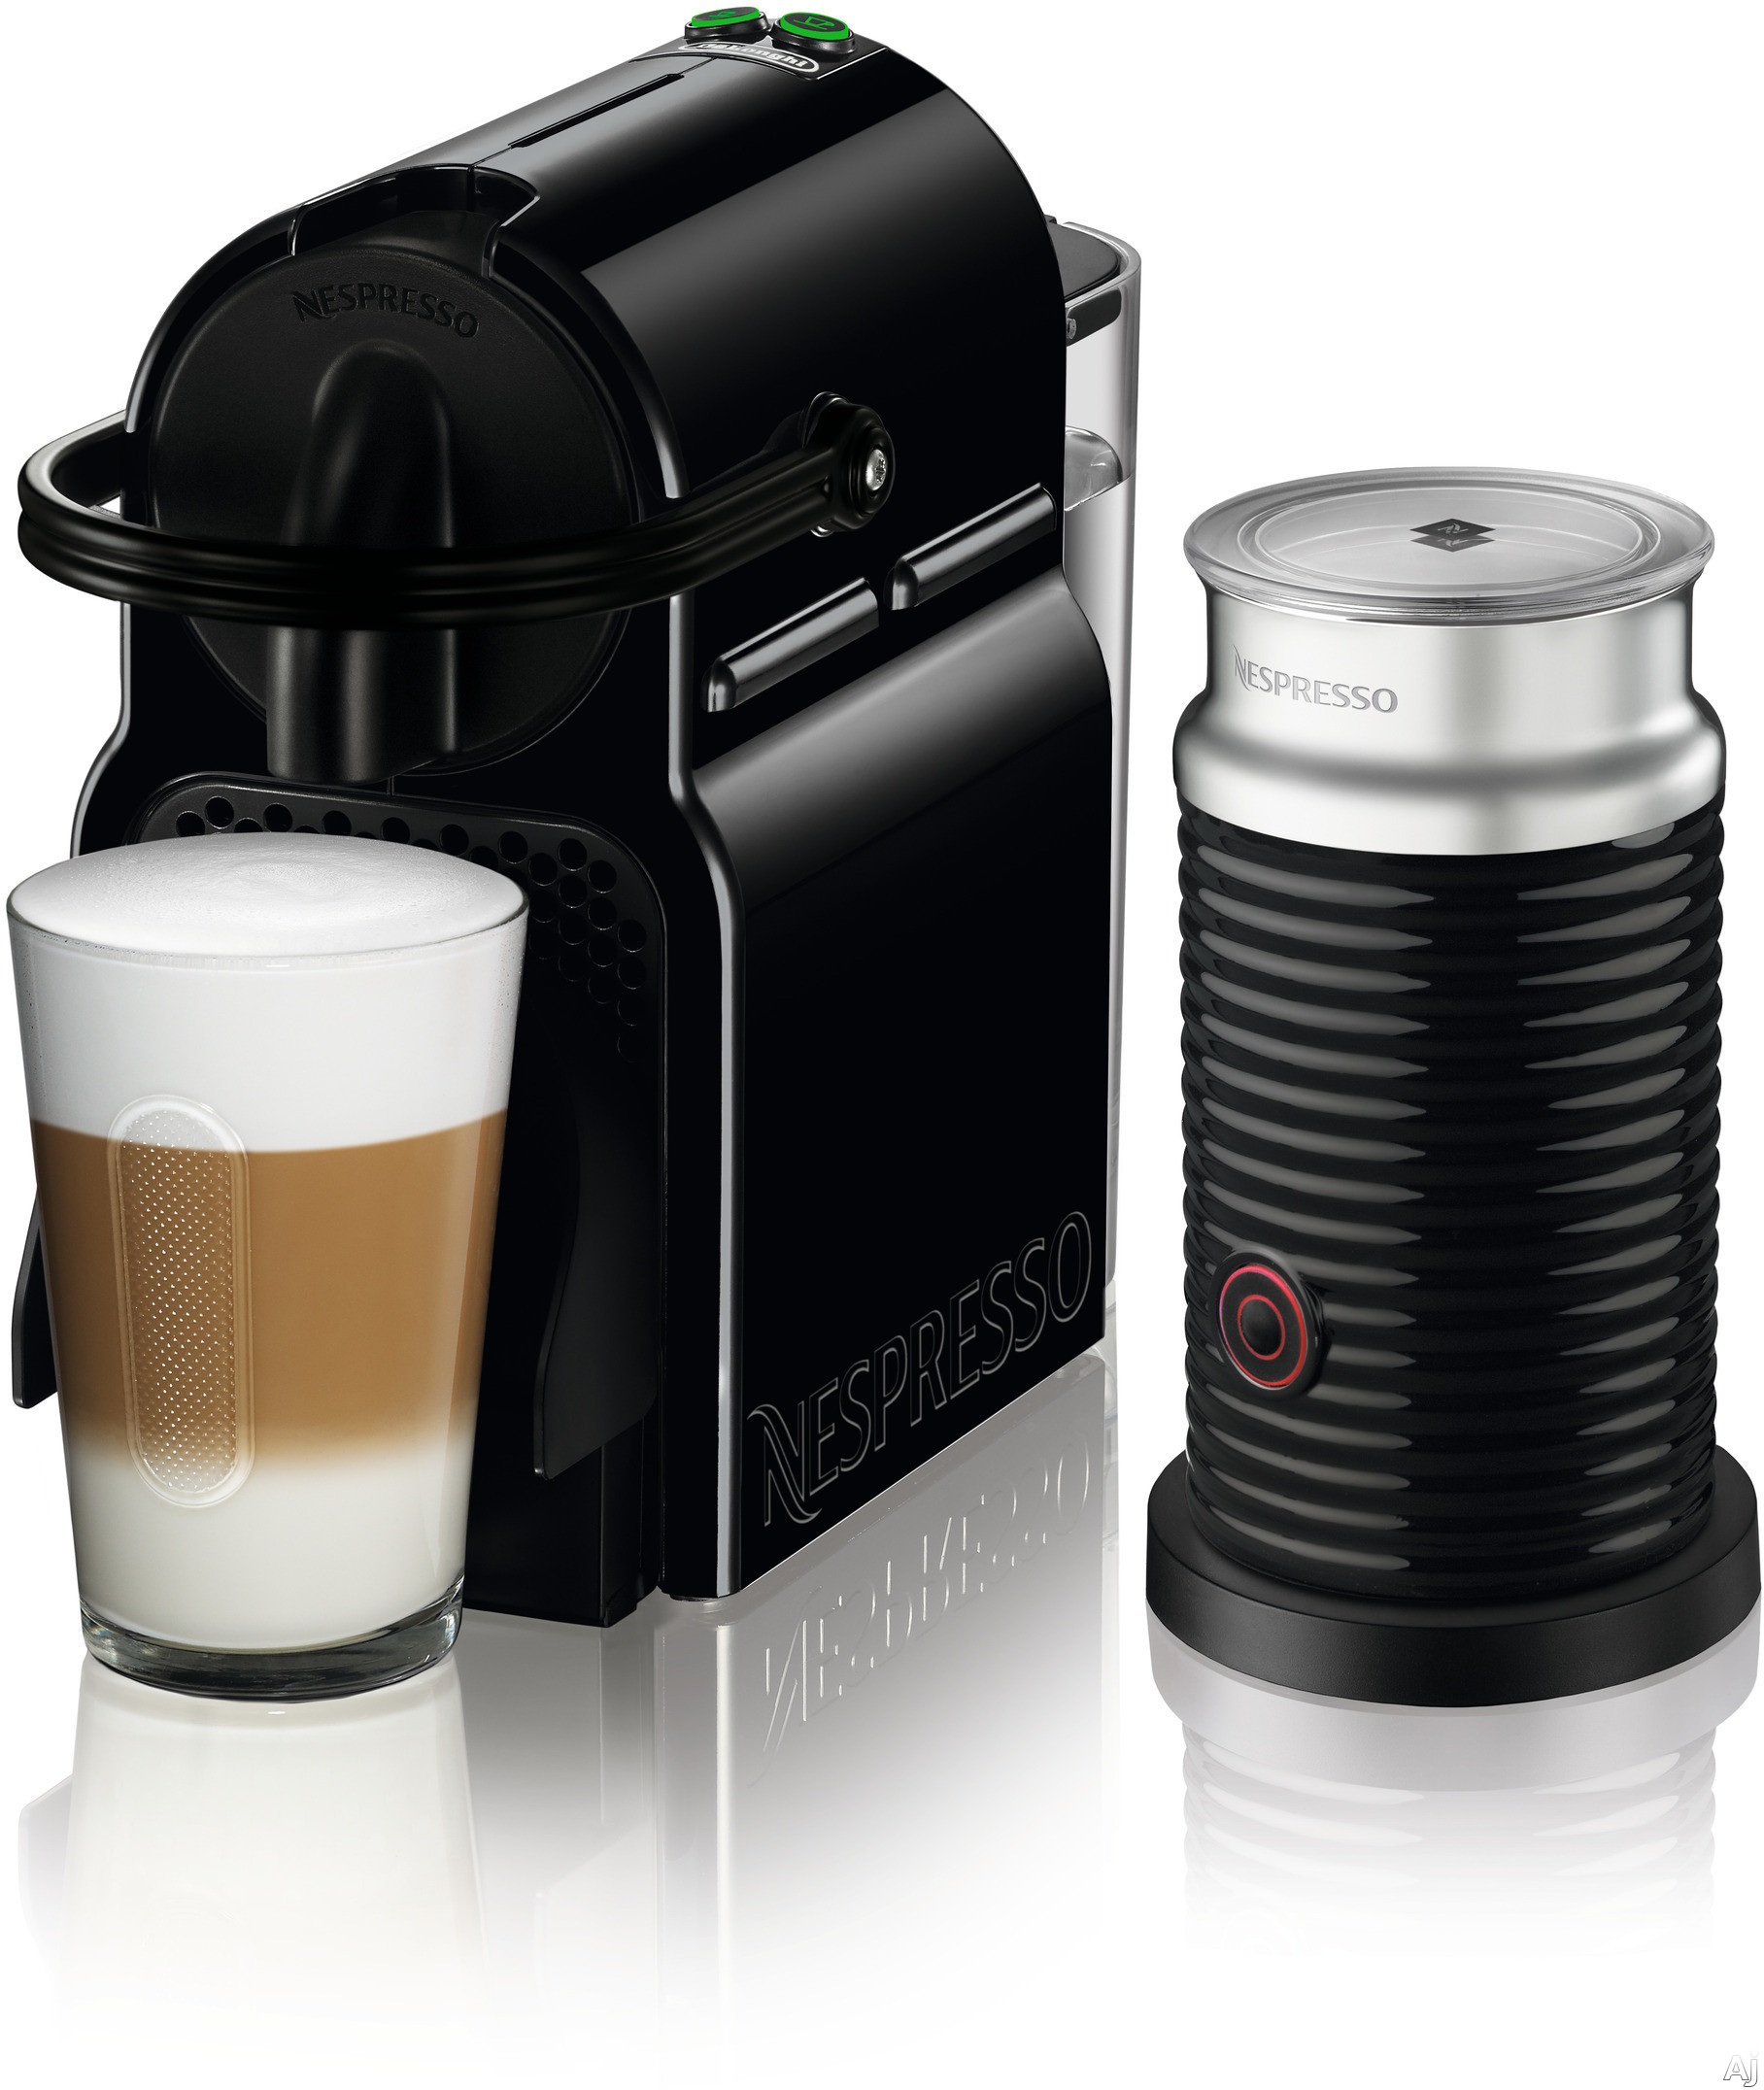 Nespresso Original Line EN80BAE Inissia Espresso Machine and Milk Frother with 2 One Touch Presets, Fast Preheat, Auto Power-off, 16 Nespresso Capsule Tasting Pack, Folding Drip Tray, Auto Volume Cont